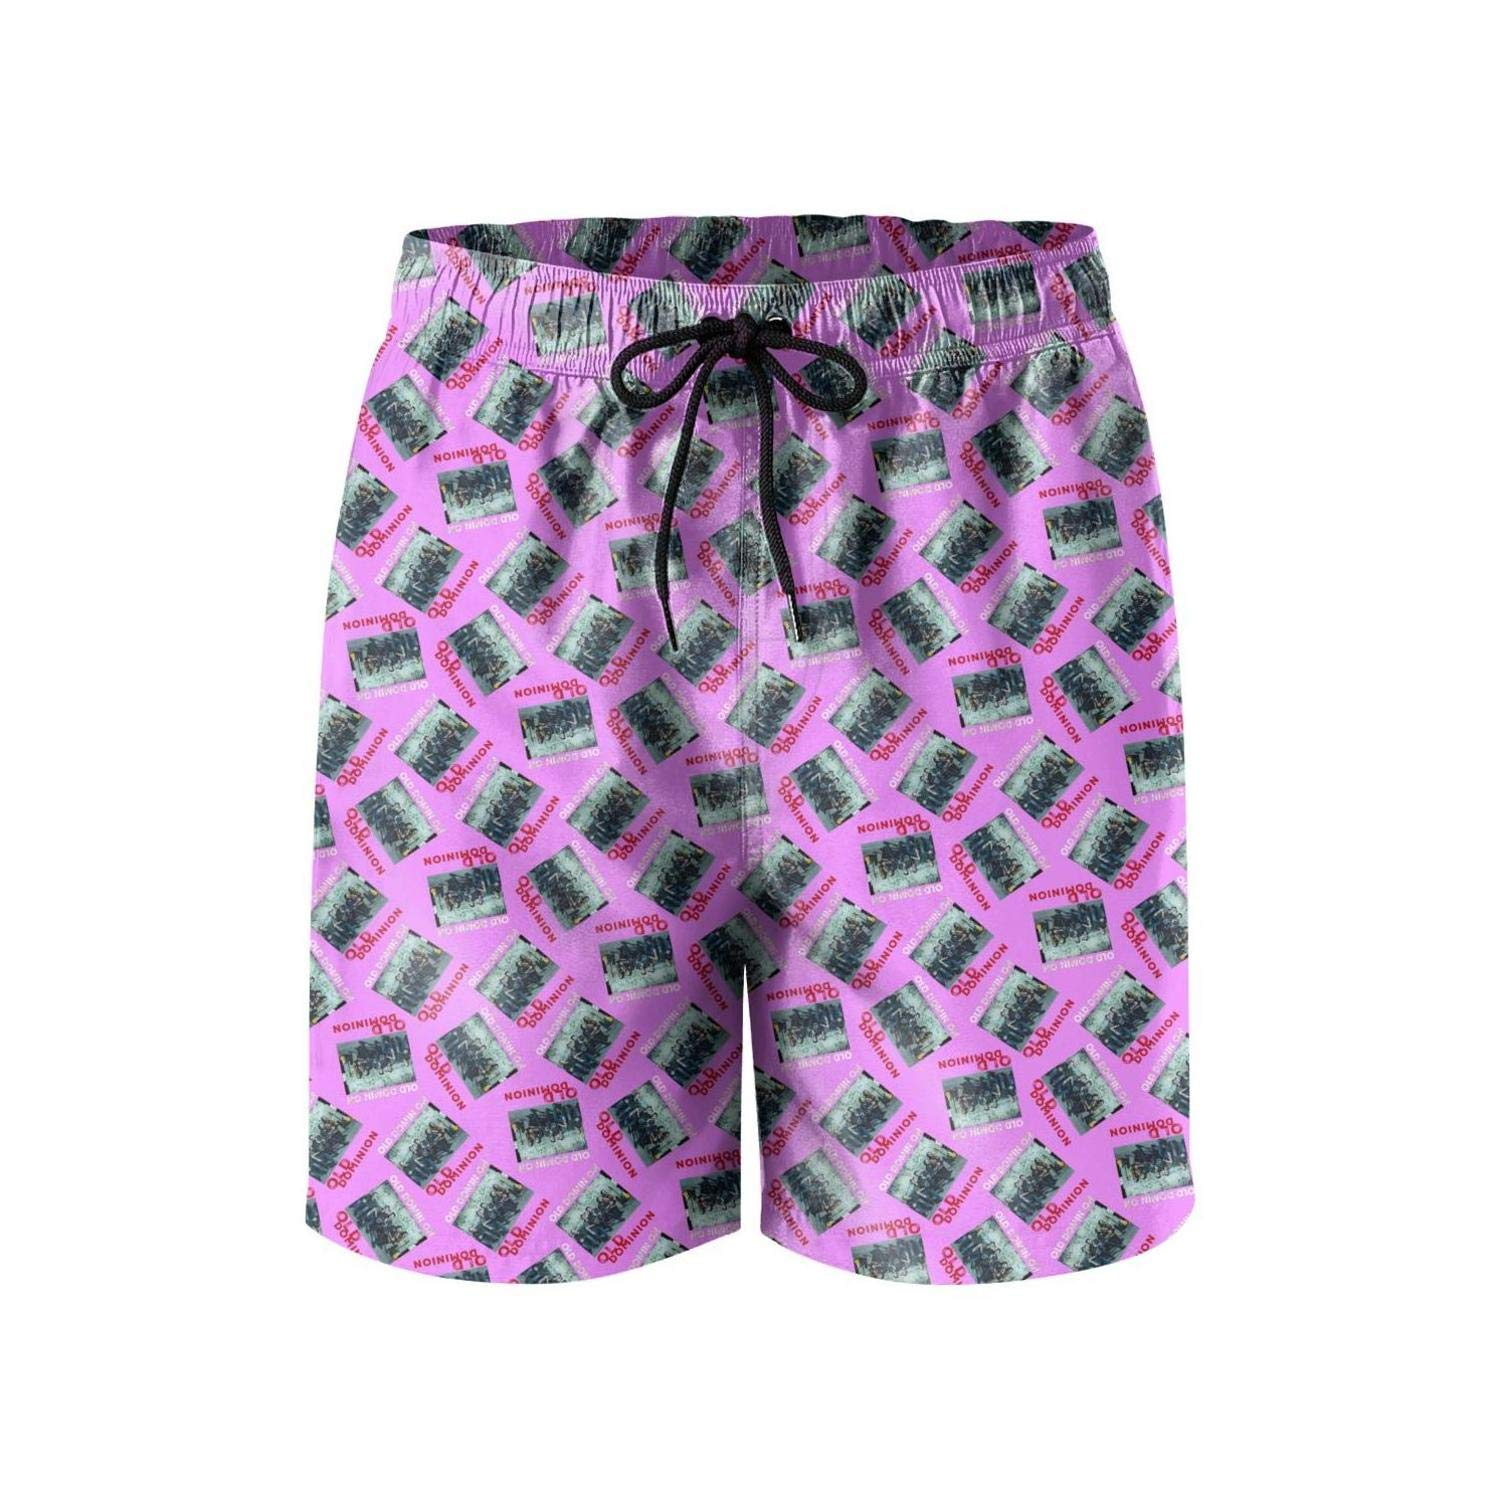 Mens Beach Shorts Fashion Music Swimsuit Trunks Jogging Colorful Home